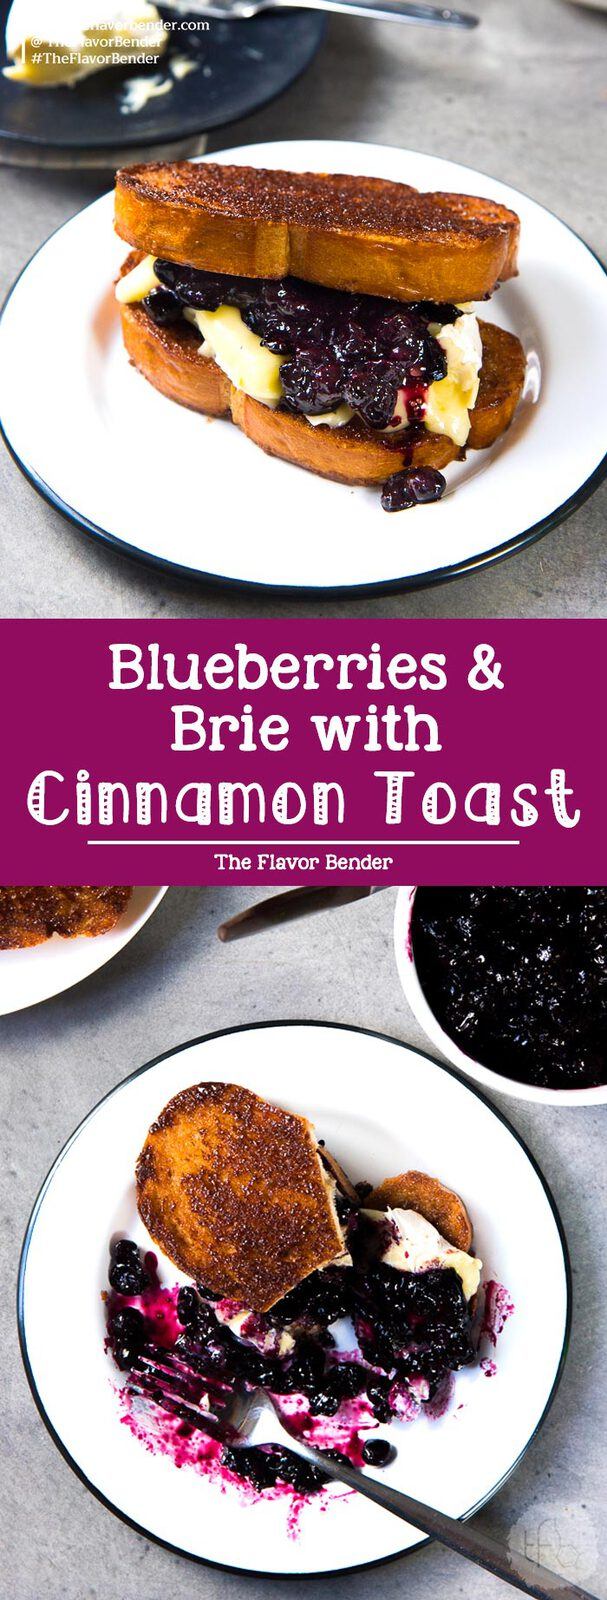 Roasted Blueberries and Brie with Cinnamon Toast - A simple, yet fancy, versatile dessert of brunch. Buttery, crunchy, sweet, salty cinnamon toast topped with a fruity blueberry compote and creamy brie. #DessertRecipes #BrunchRecipes #CinnamonToast #Brie #Blueberries